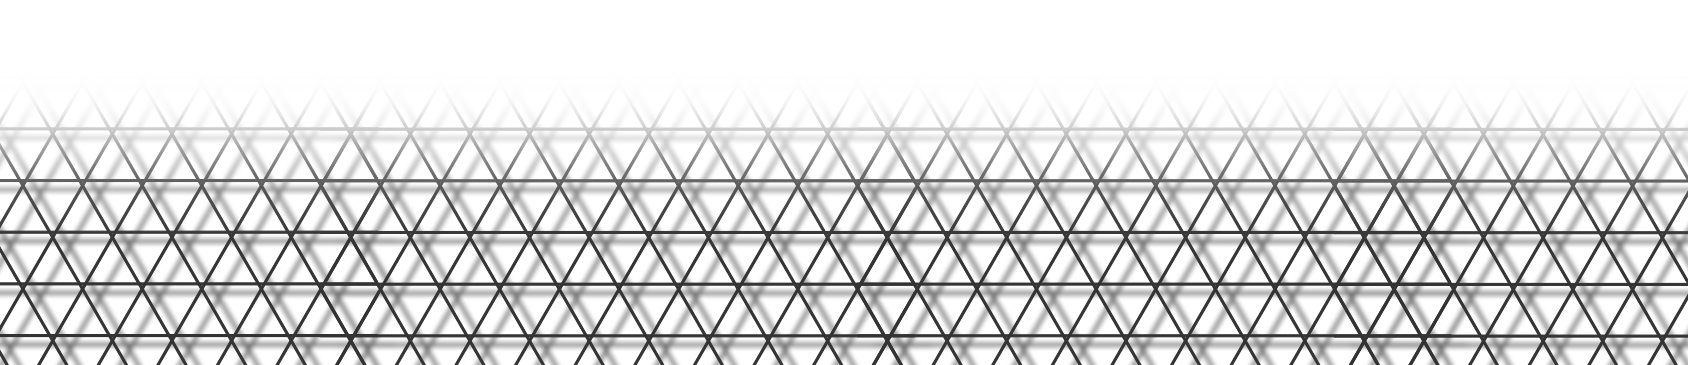 isogrid_footergraphic